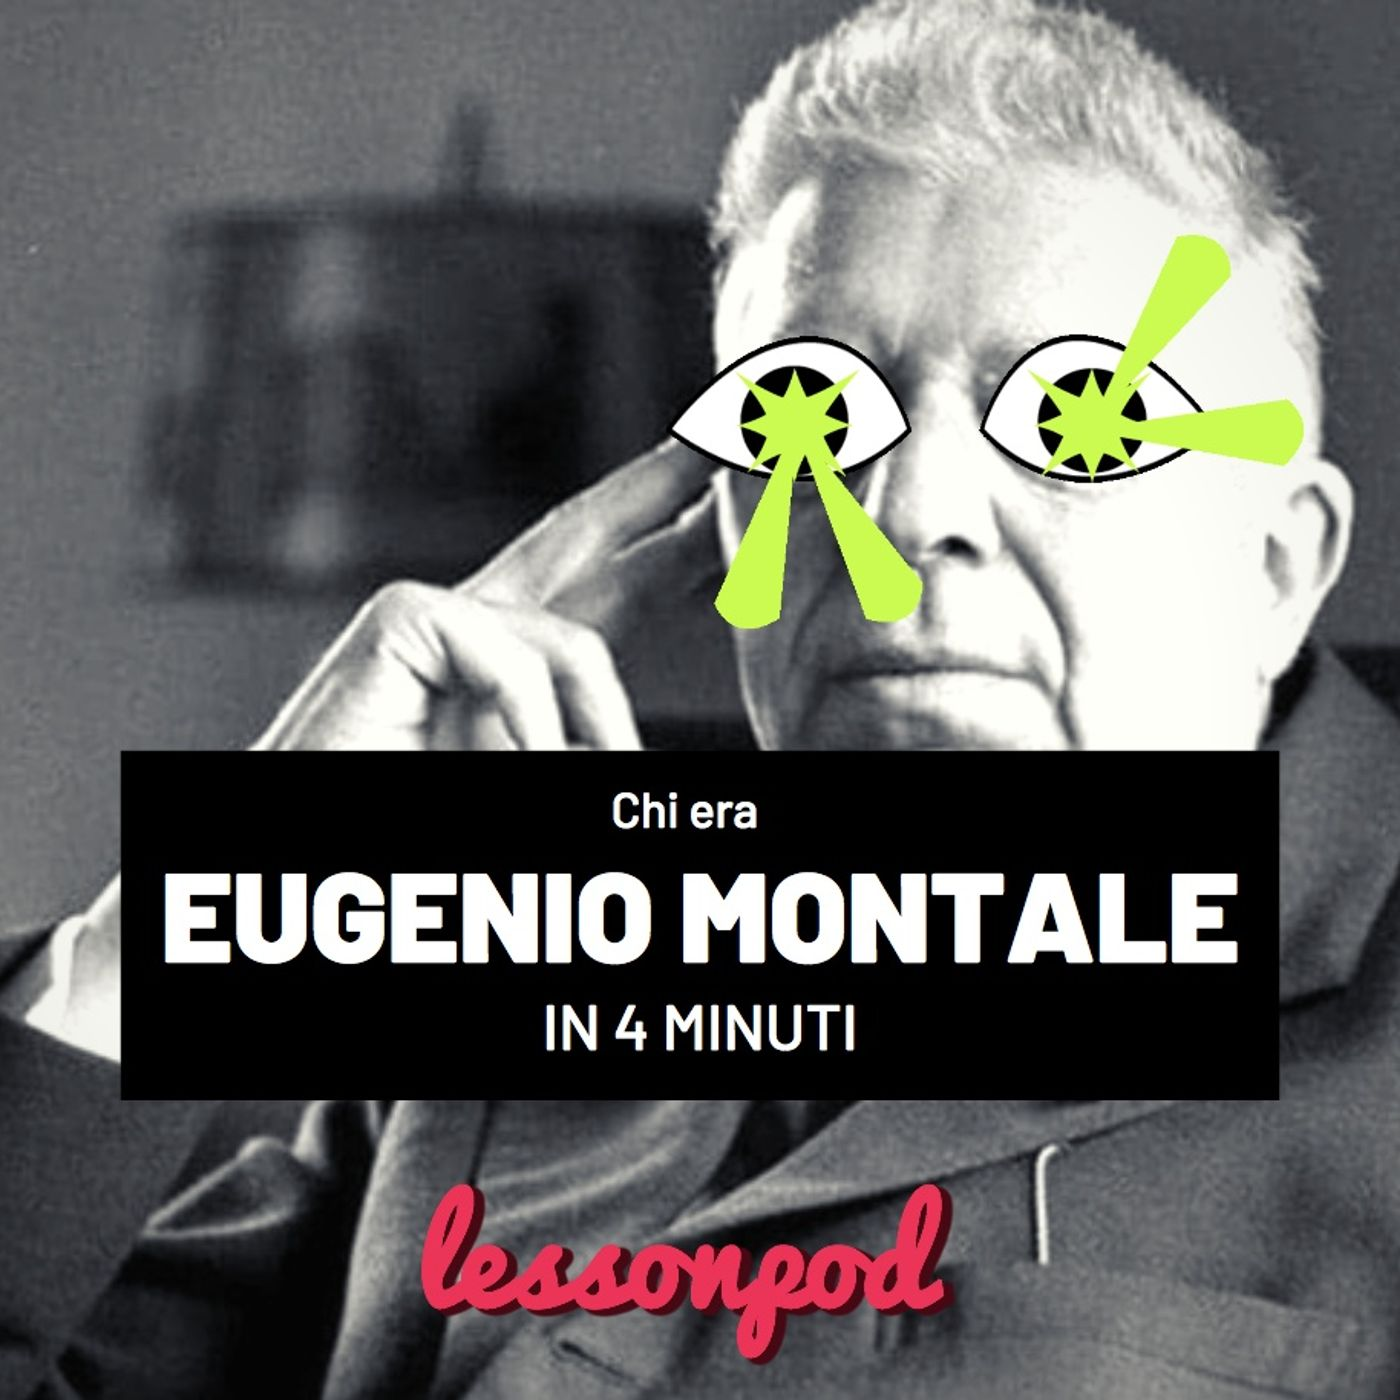 Chi era Eugenio Montale in 4 minuti